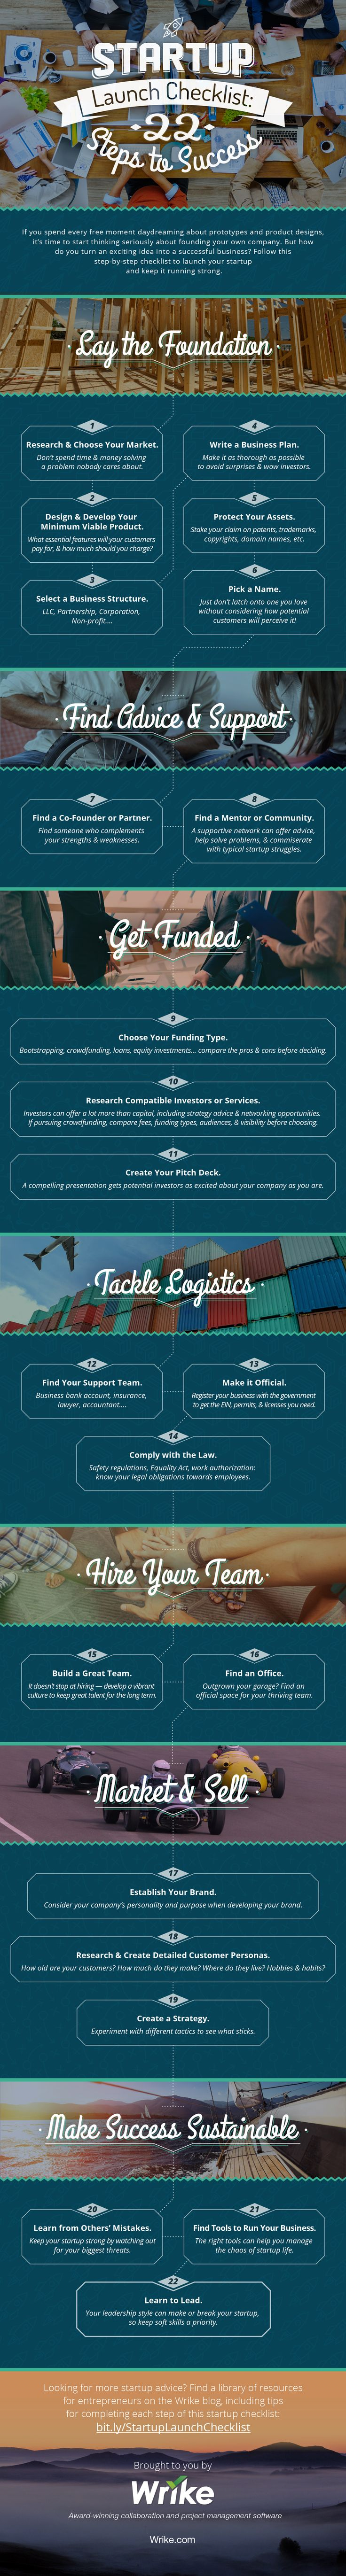 Startup Launch Checklist: 22 Steps to Success #infographic #Startup #Marketing